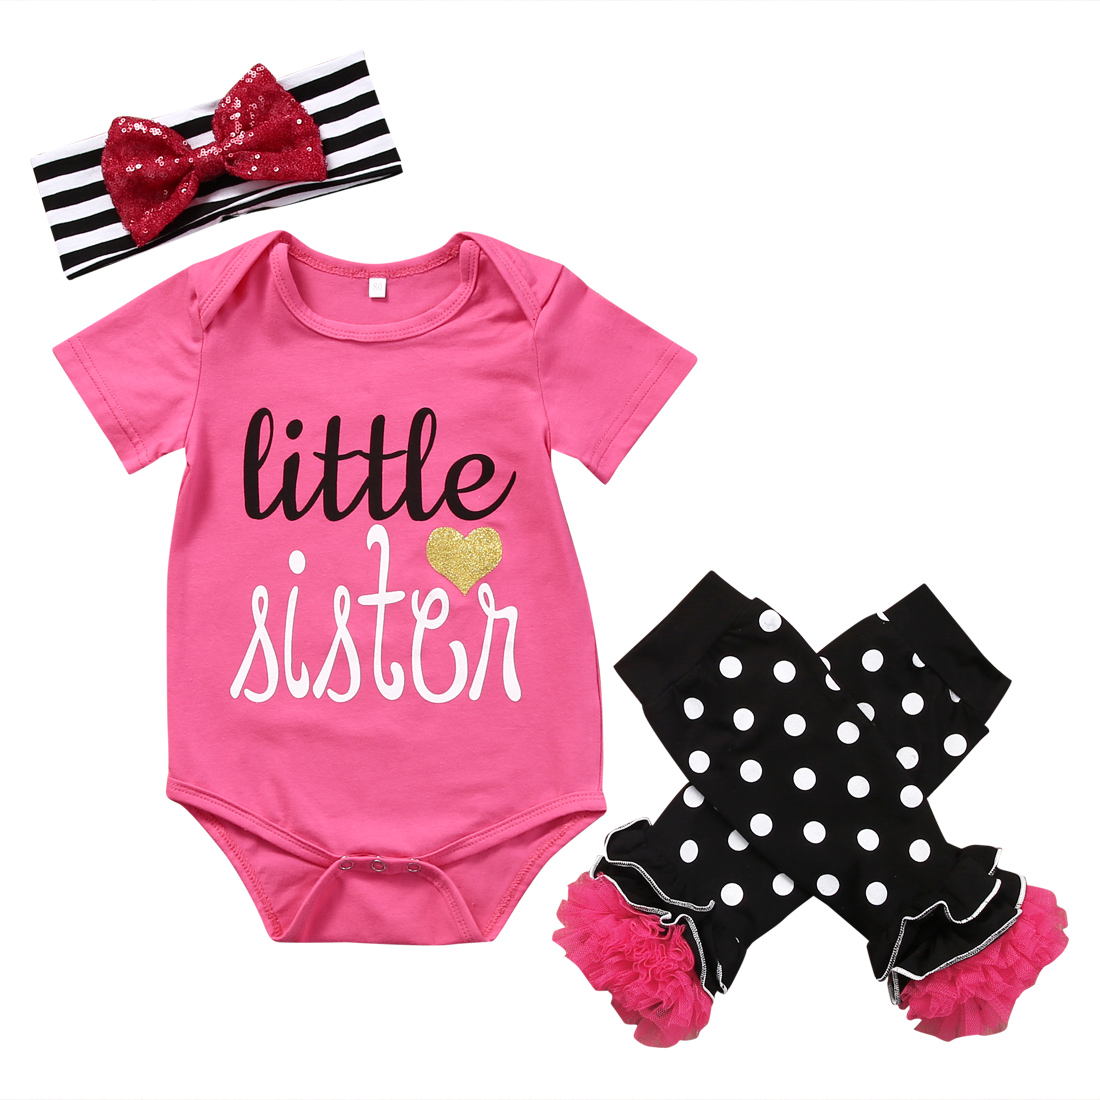 3PCS Set Newborn Baby Girl Clothes Little Sister Romper Jumpsuit+ Leg Warmer+Headband Outfit Bebek Giyim Clothing Outfits 0-24M pink newborn infant baby girls clothes short sleeve bodysuit striped leg warmers headband 3pcs outfit bebek clothing set 0 18m